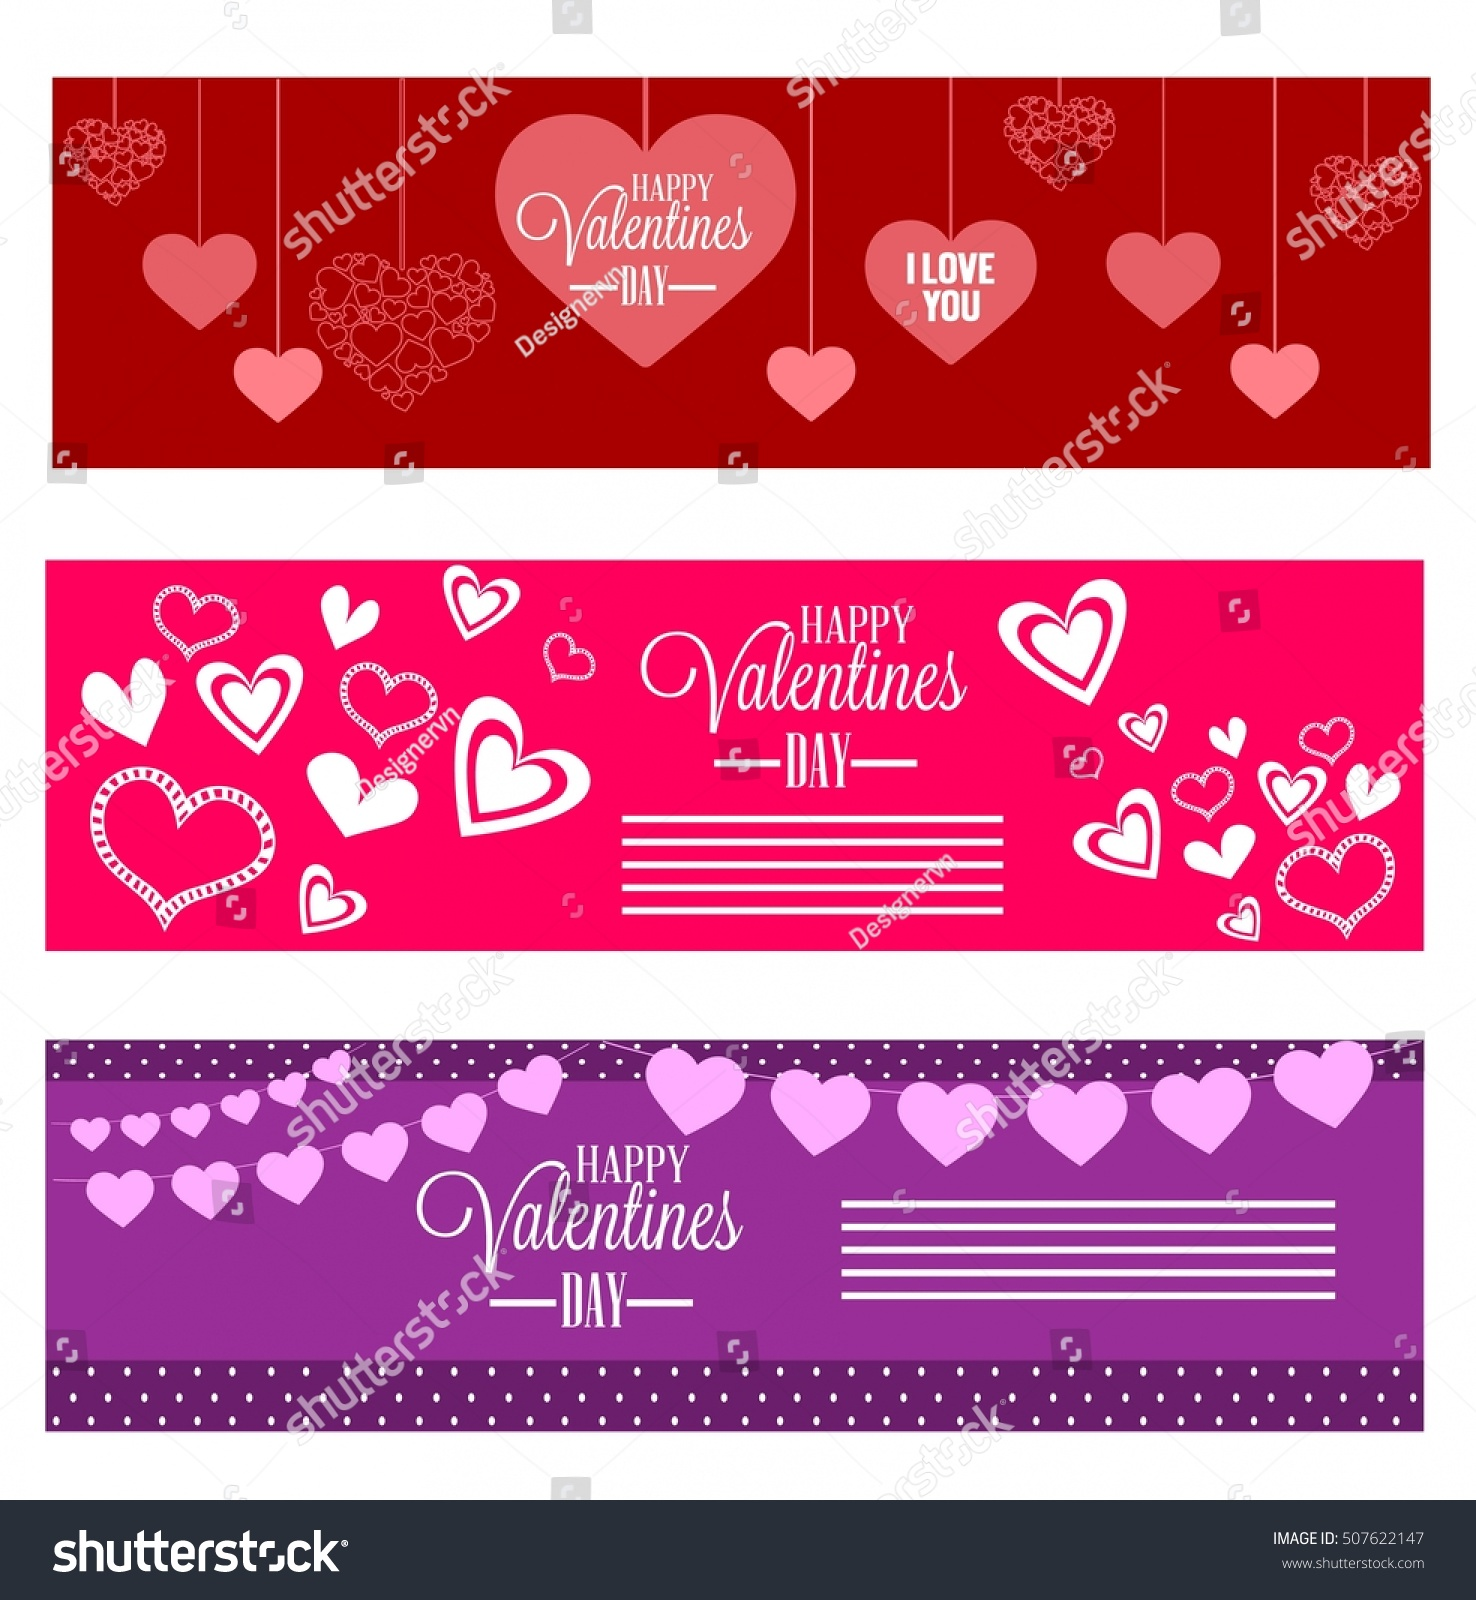 Großartig Red And Violet Valentine Banners Collection Hearts Decoration